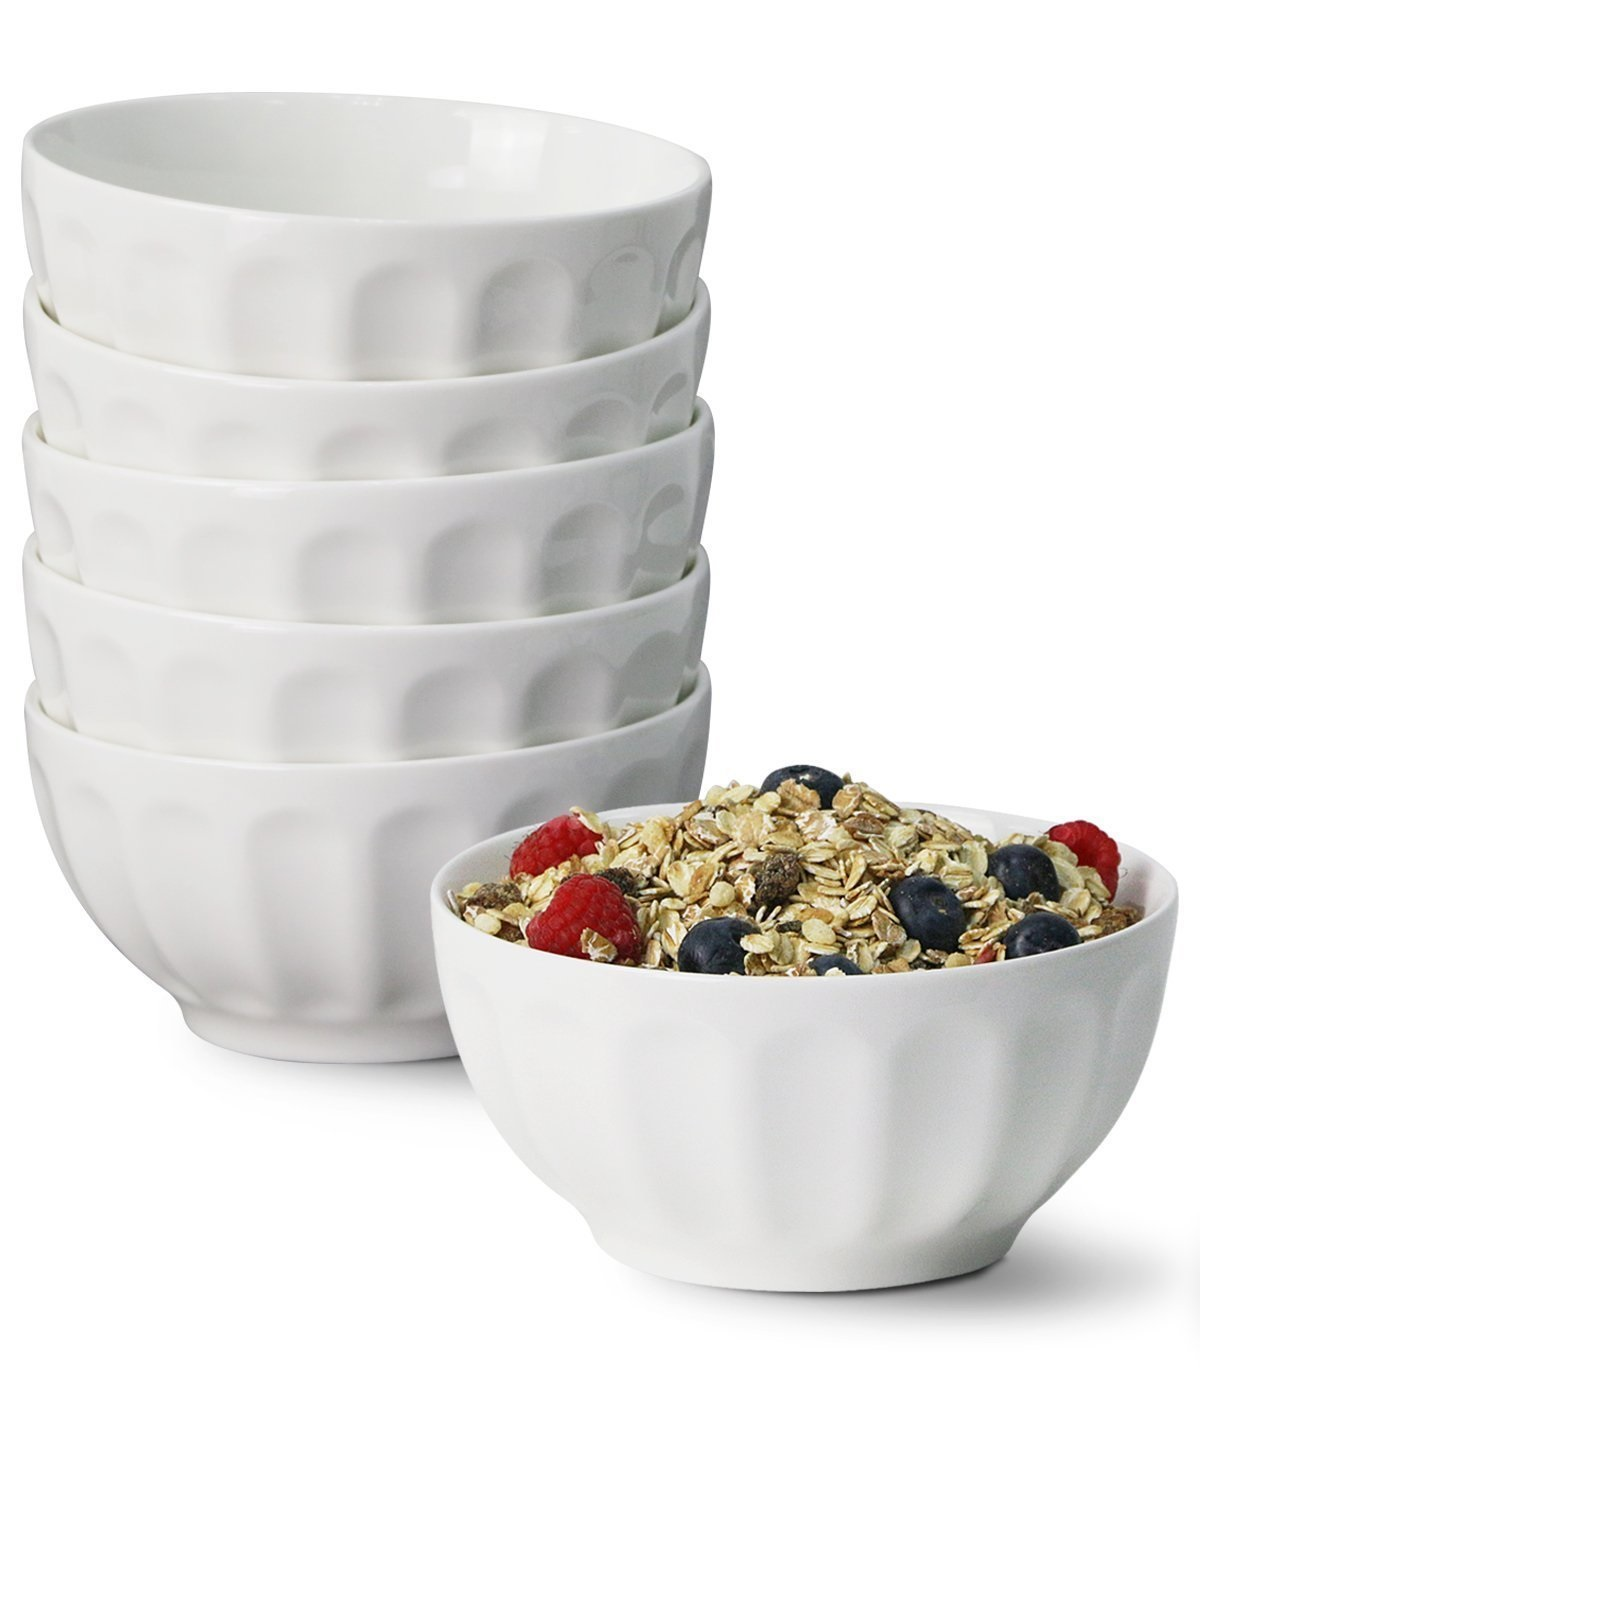 Sweese Porcelain Fluted Cereal Bowls